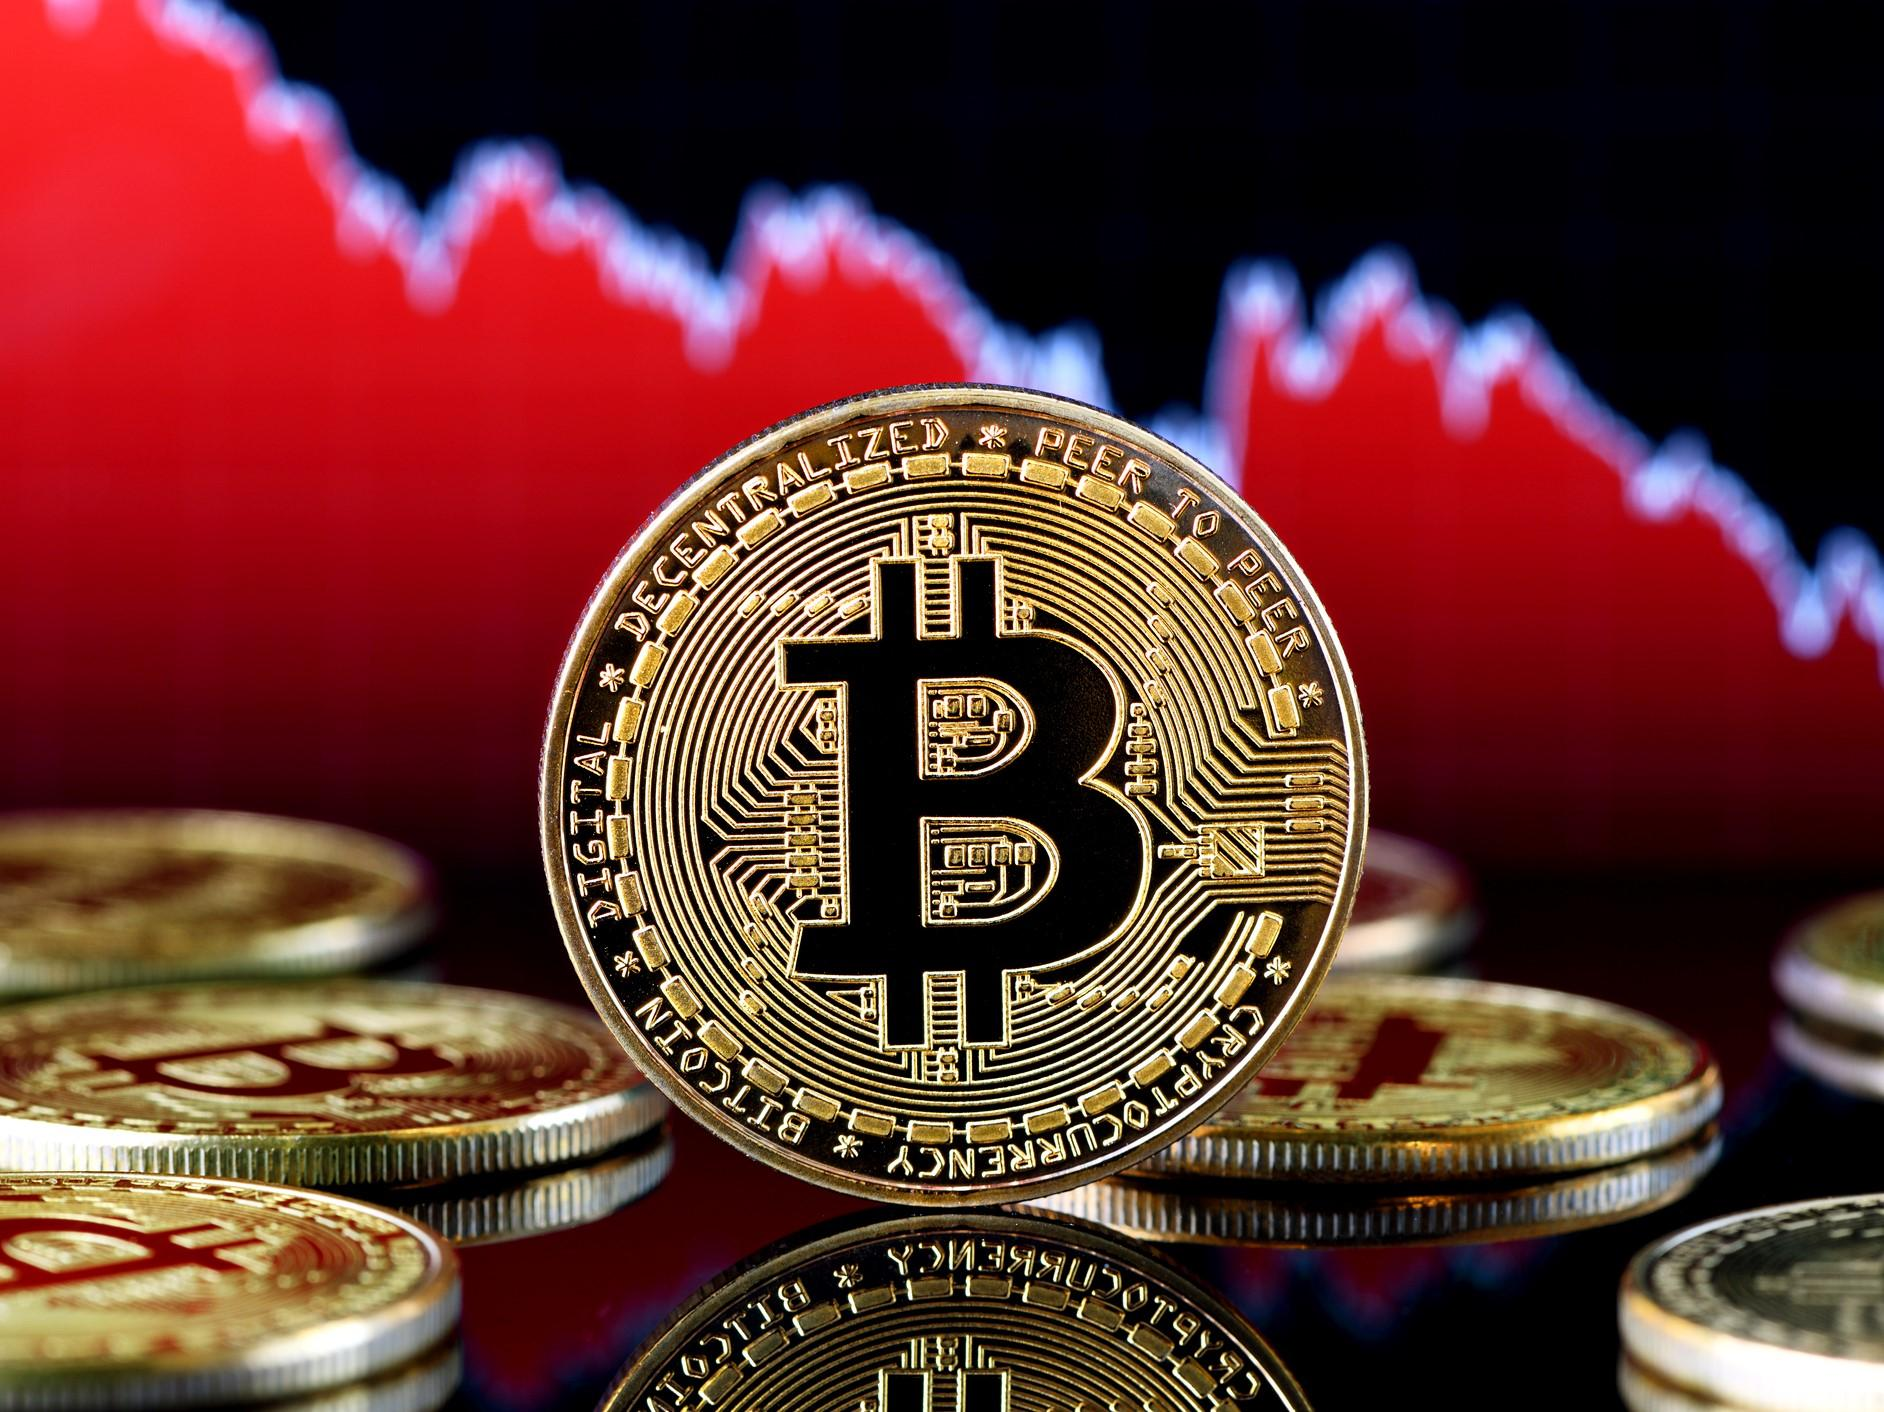 Bitcoin price plummets amid mysterious cryptocurrency market crash